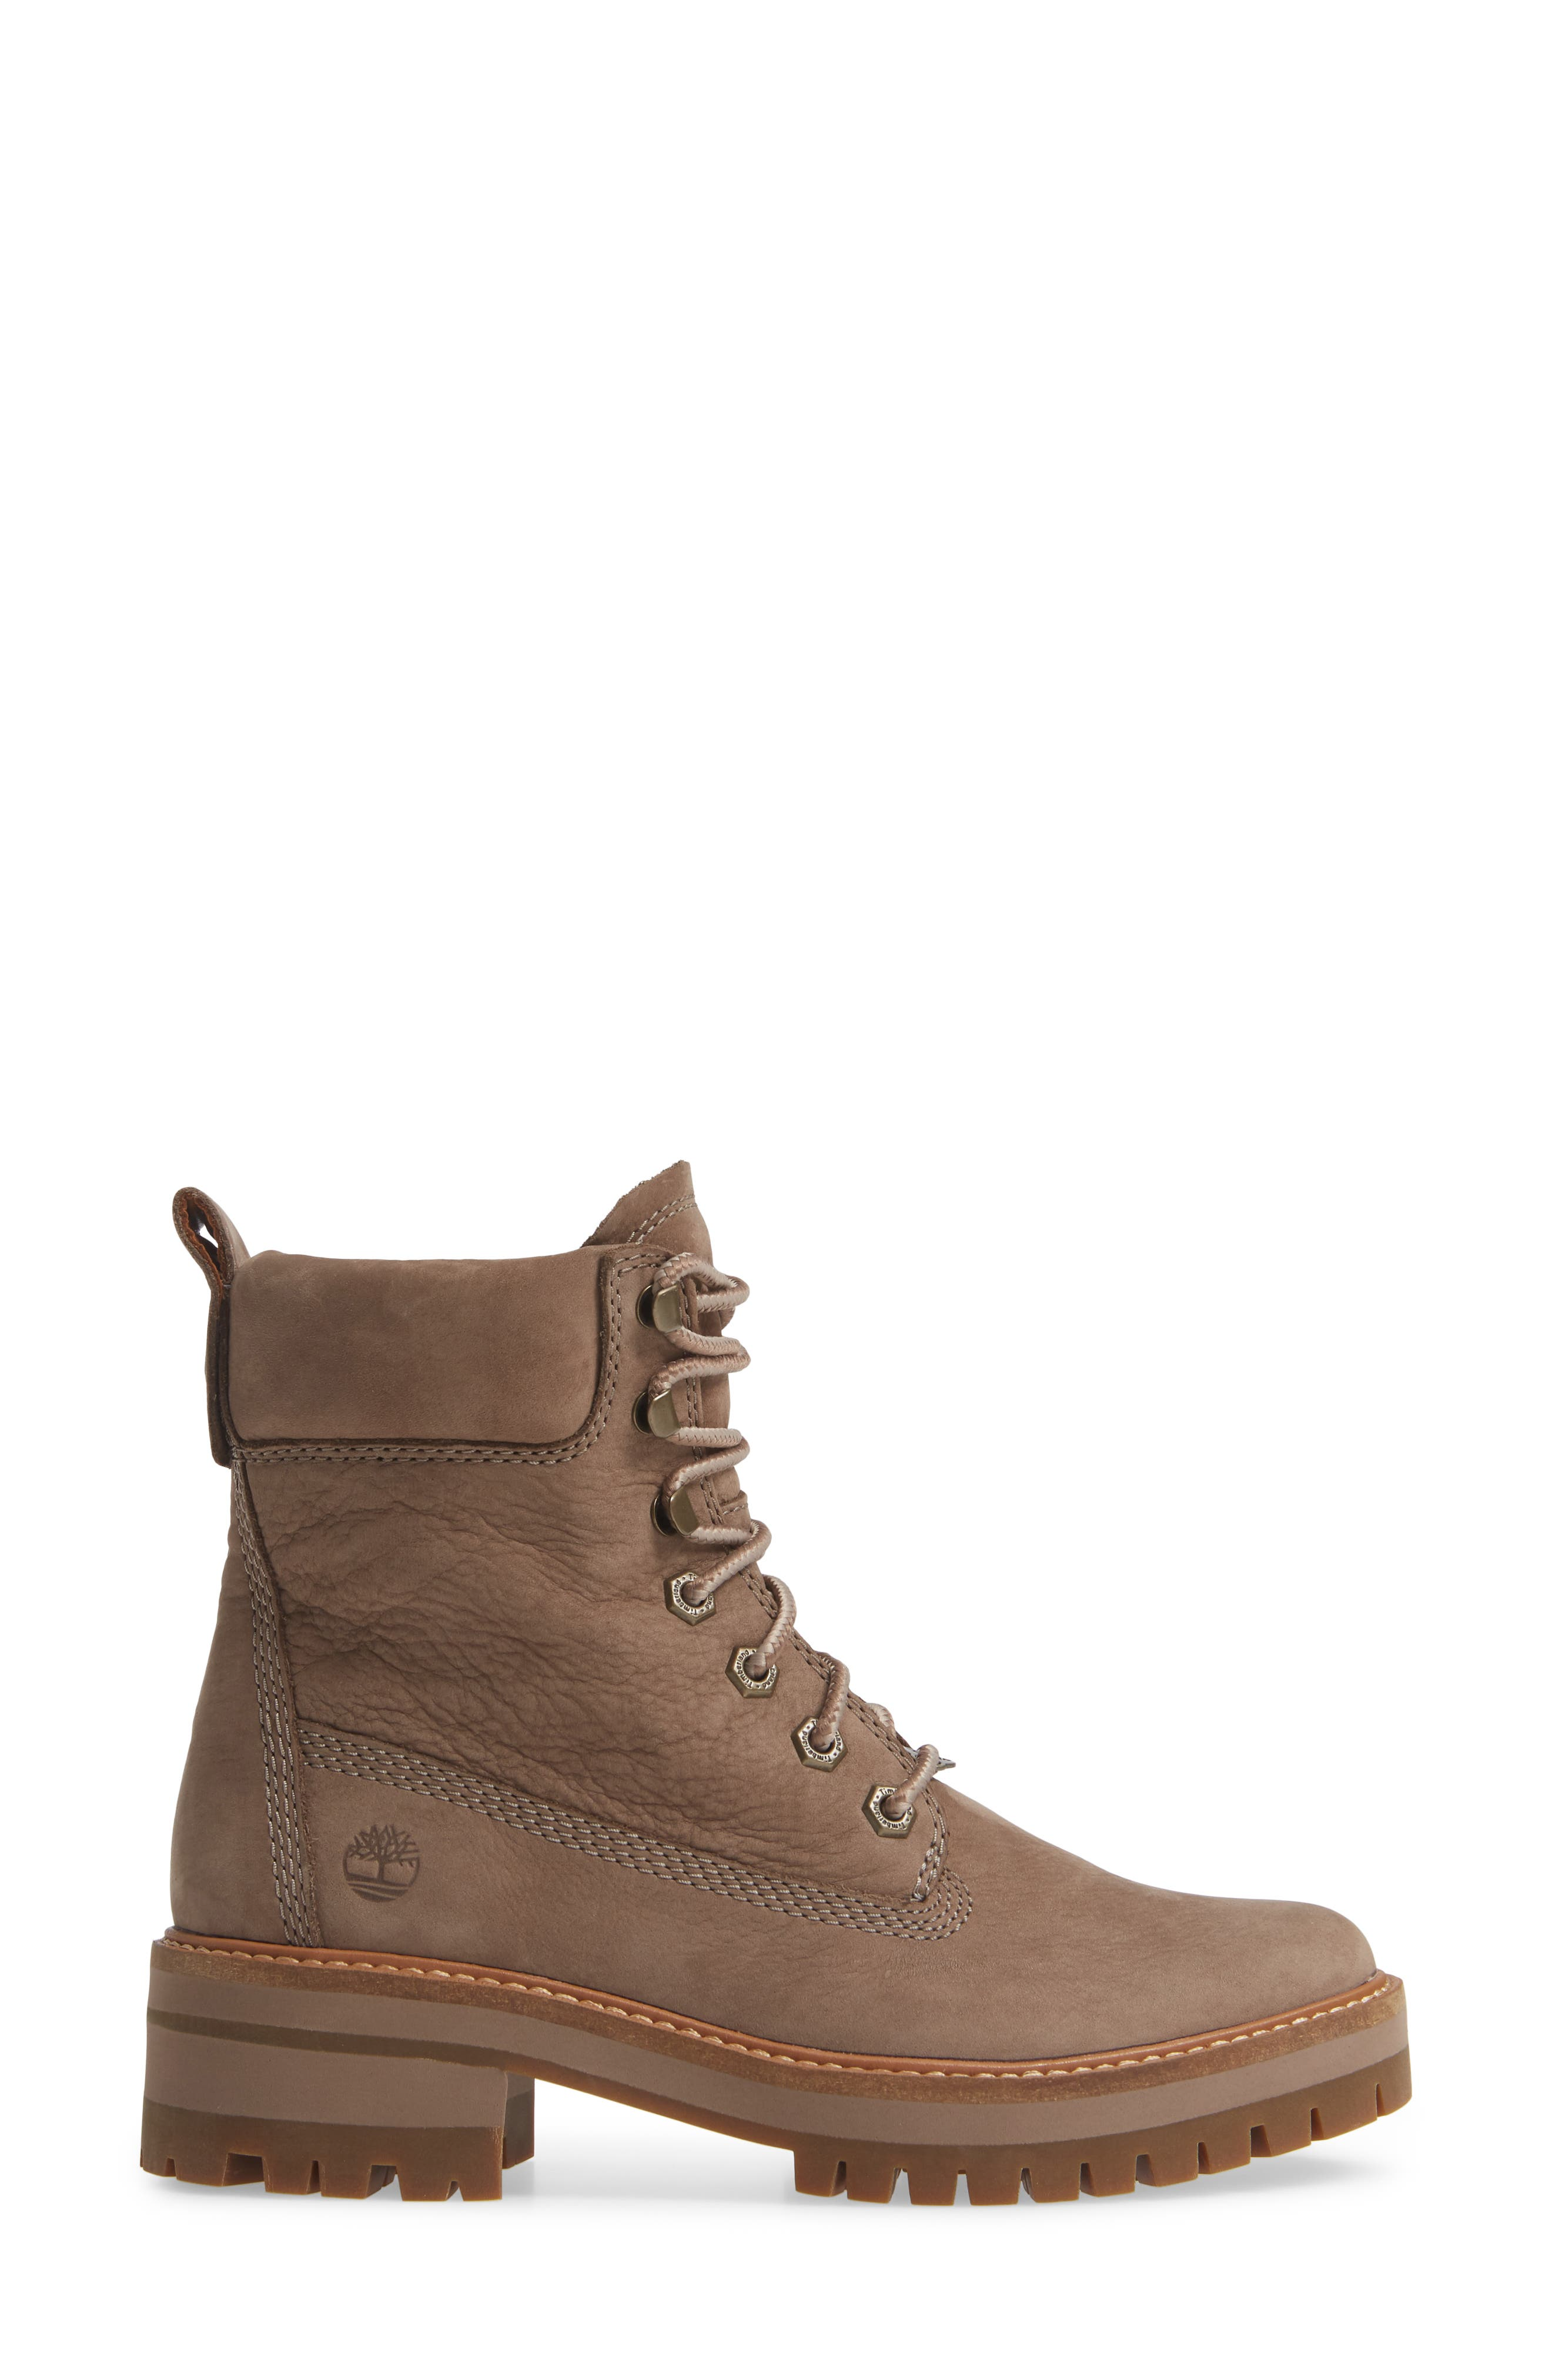 Courmayeur Valley Water Resistant Hiking Boot,                             Alternate thumbnail 3, color,                             TAUPE GREY NUBUCK